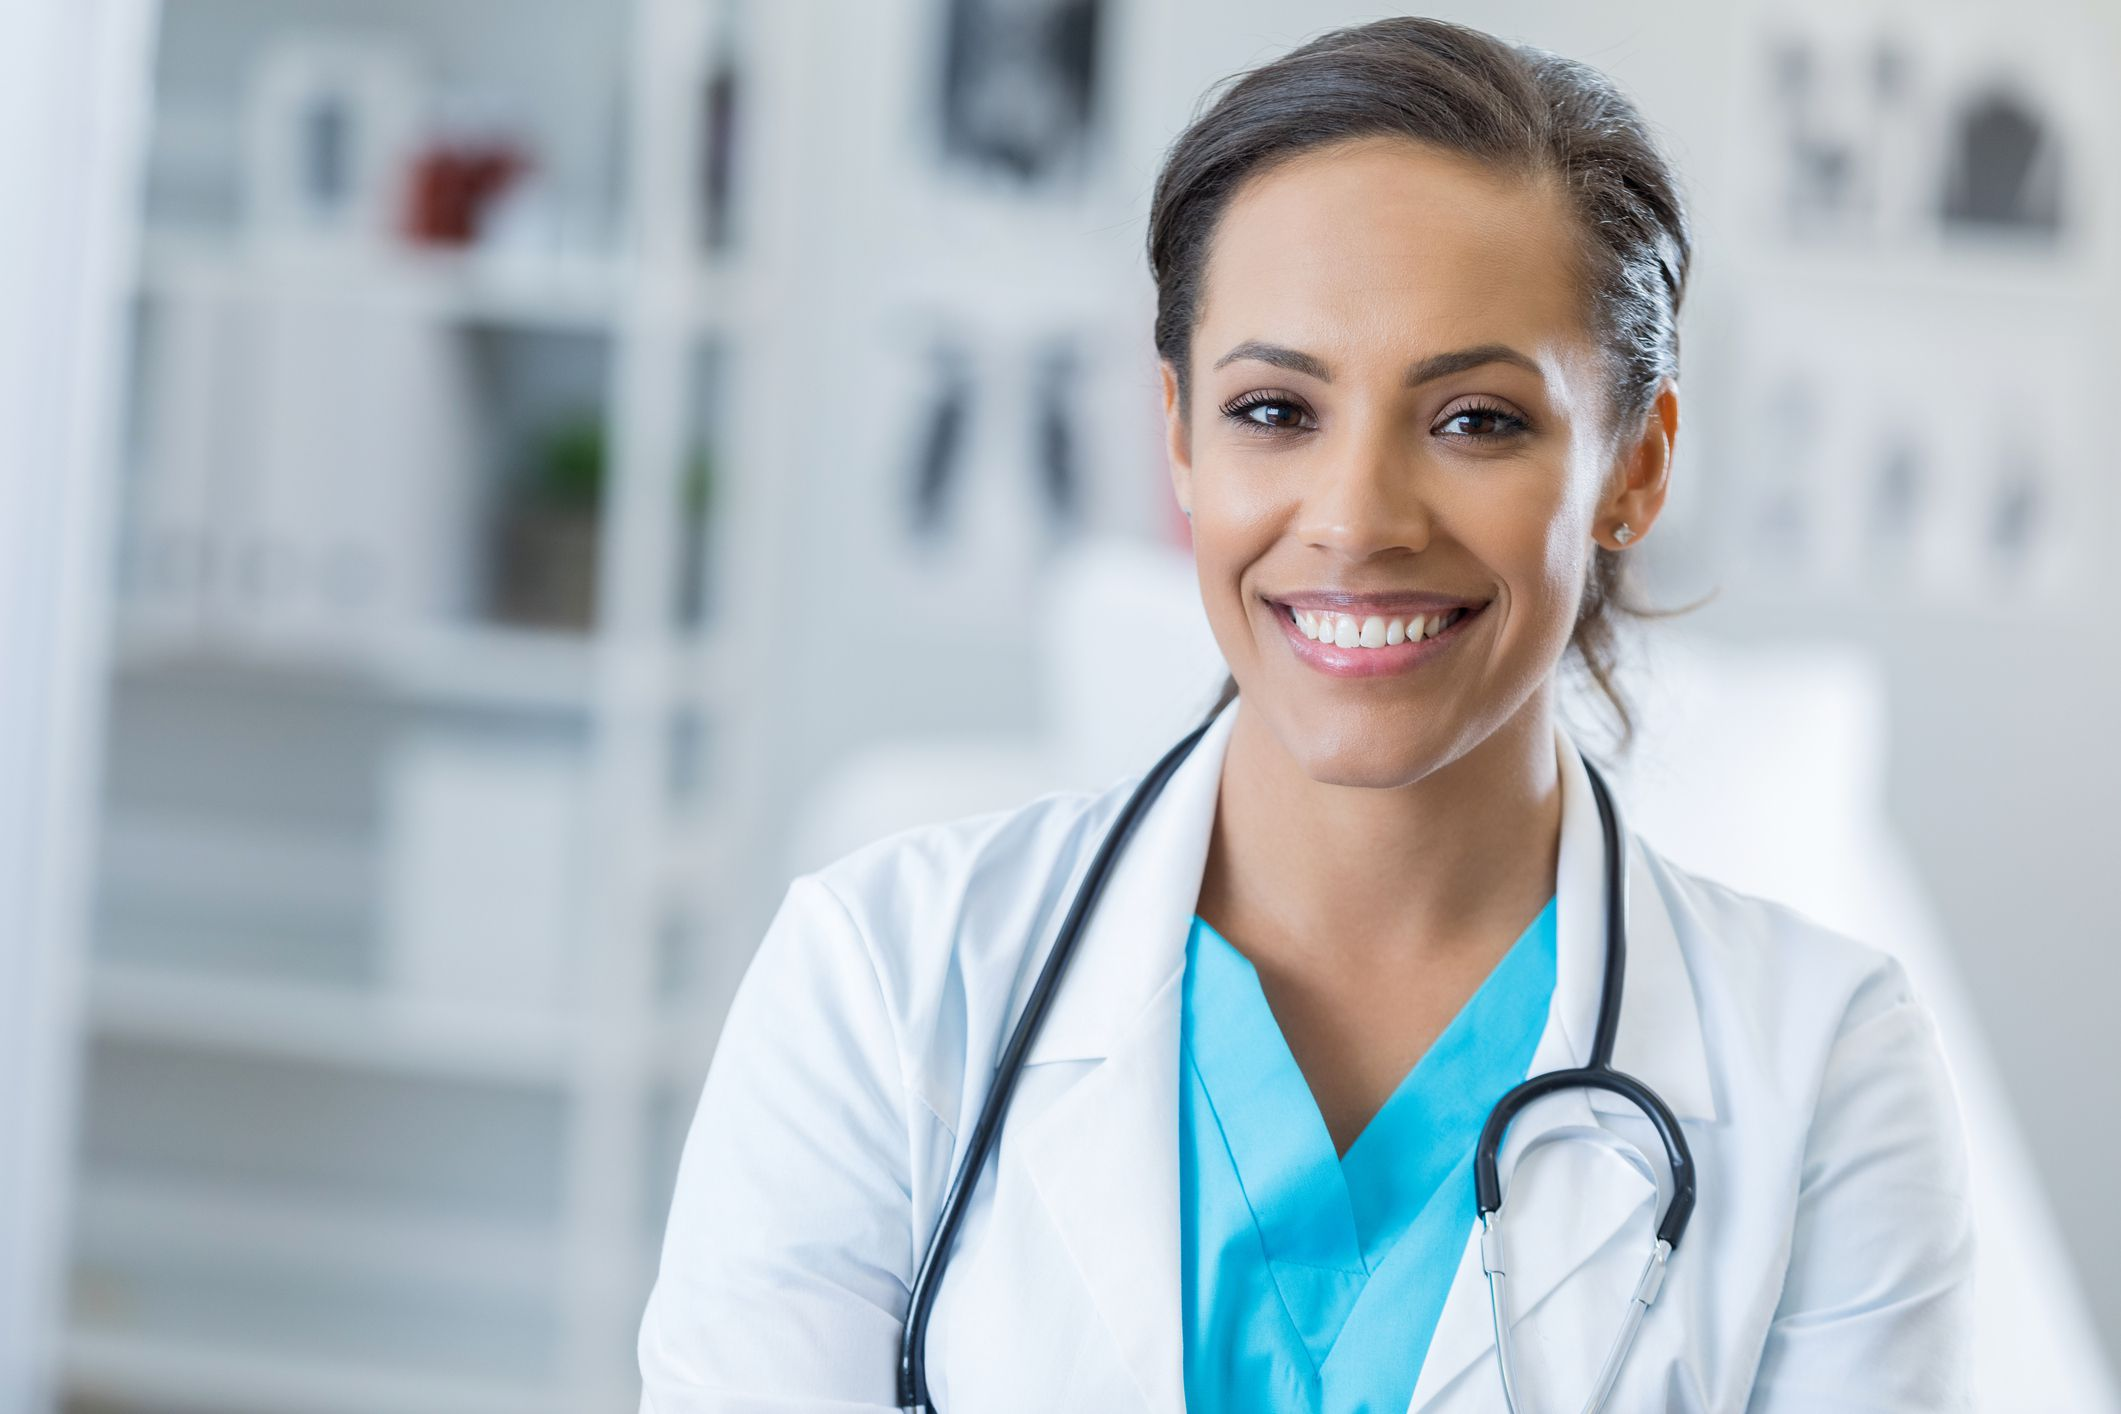 Pretty mid adult African American surgeon smiles cheerfully at the camera. She is wearing a stethoscope and lab coat.